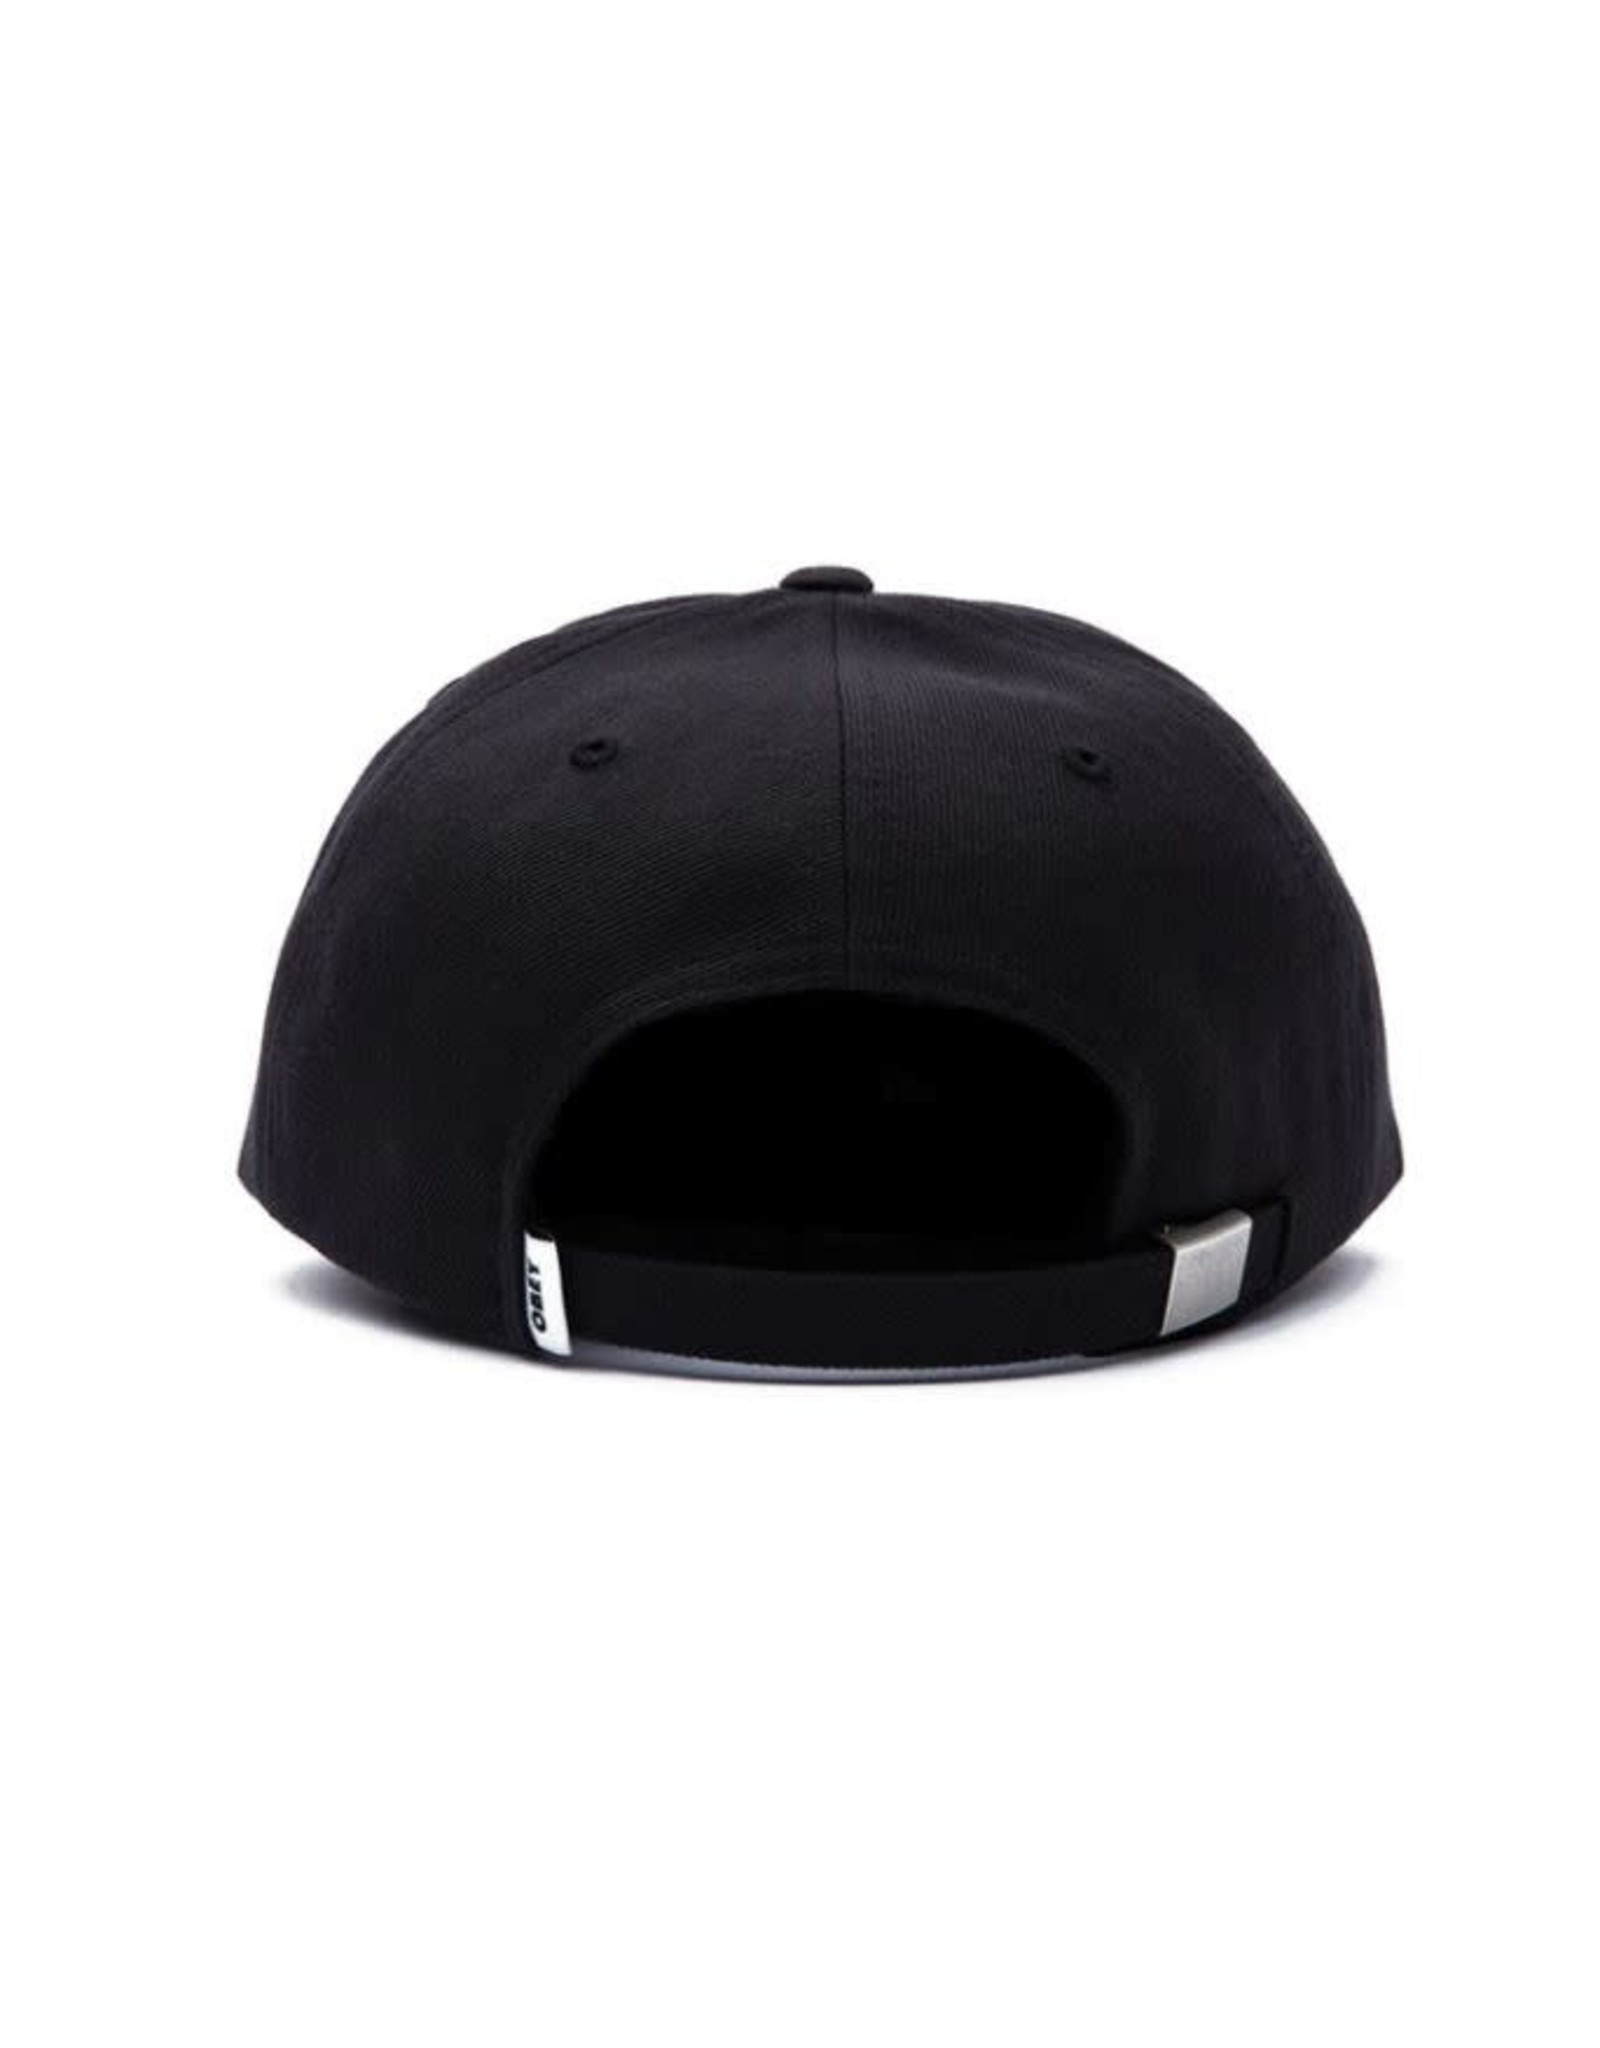 Obey Obey - Casquette homme serge 6 panel strapback black